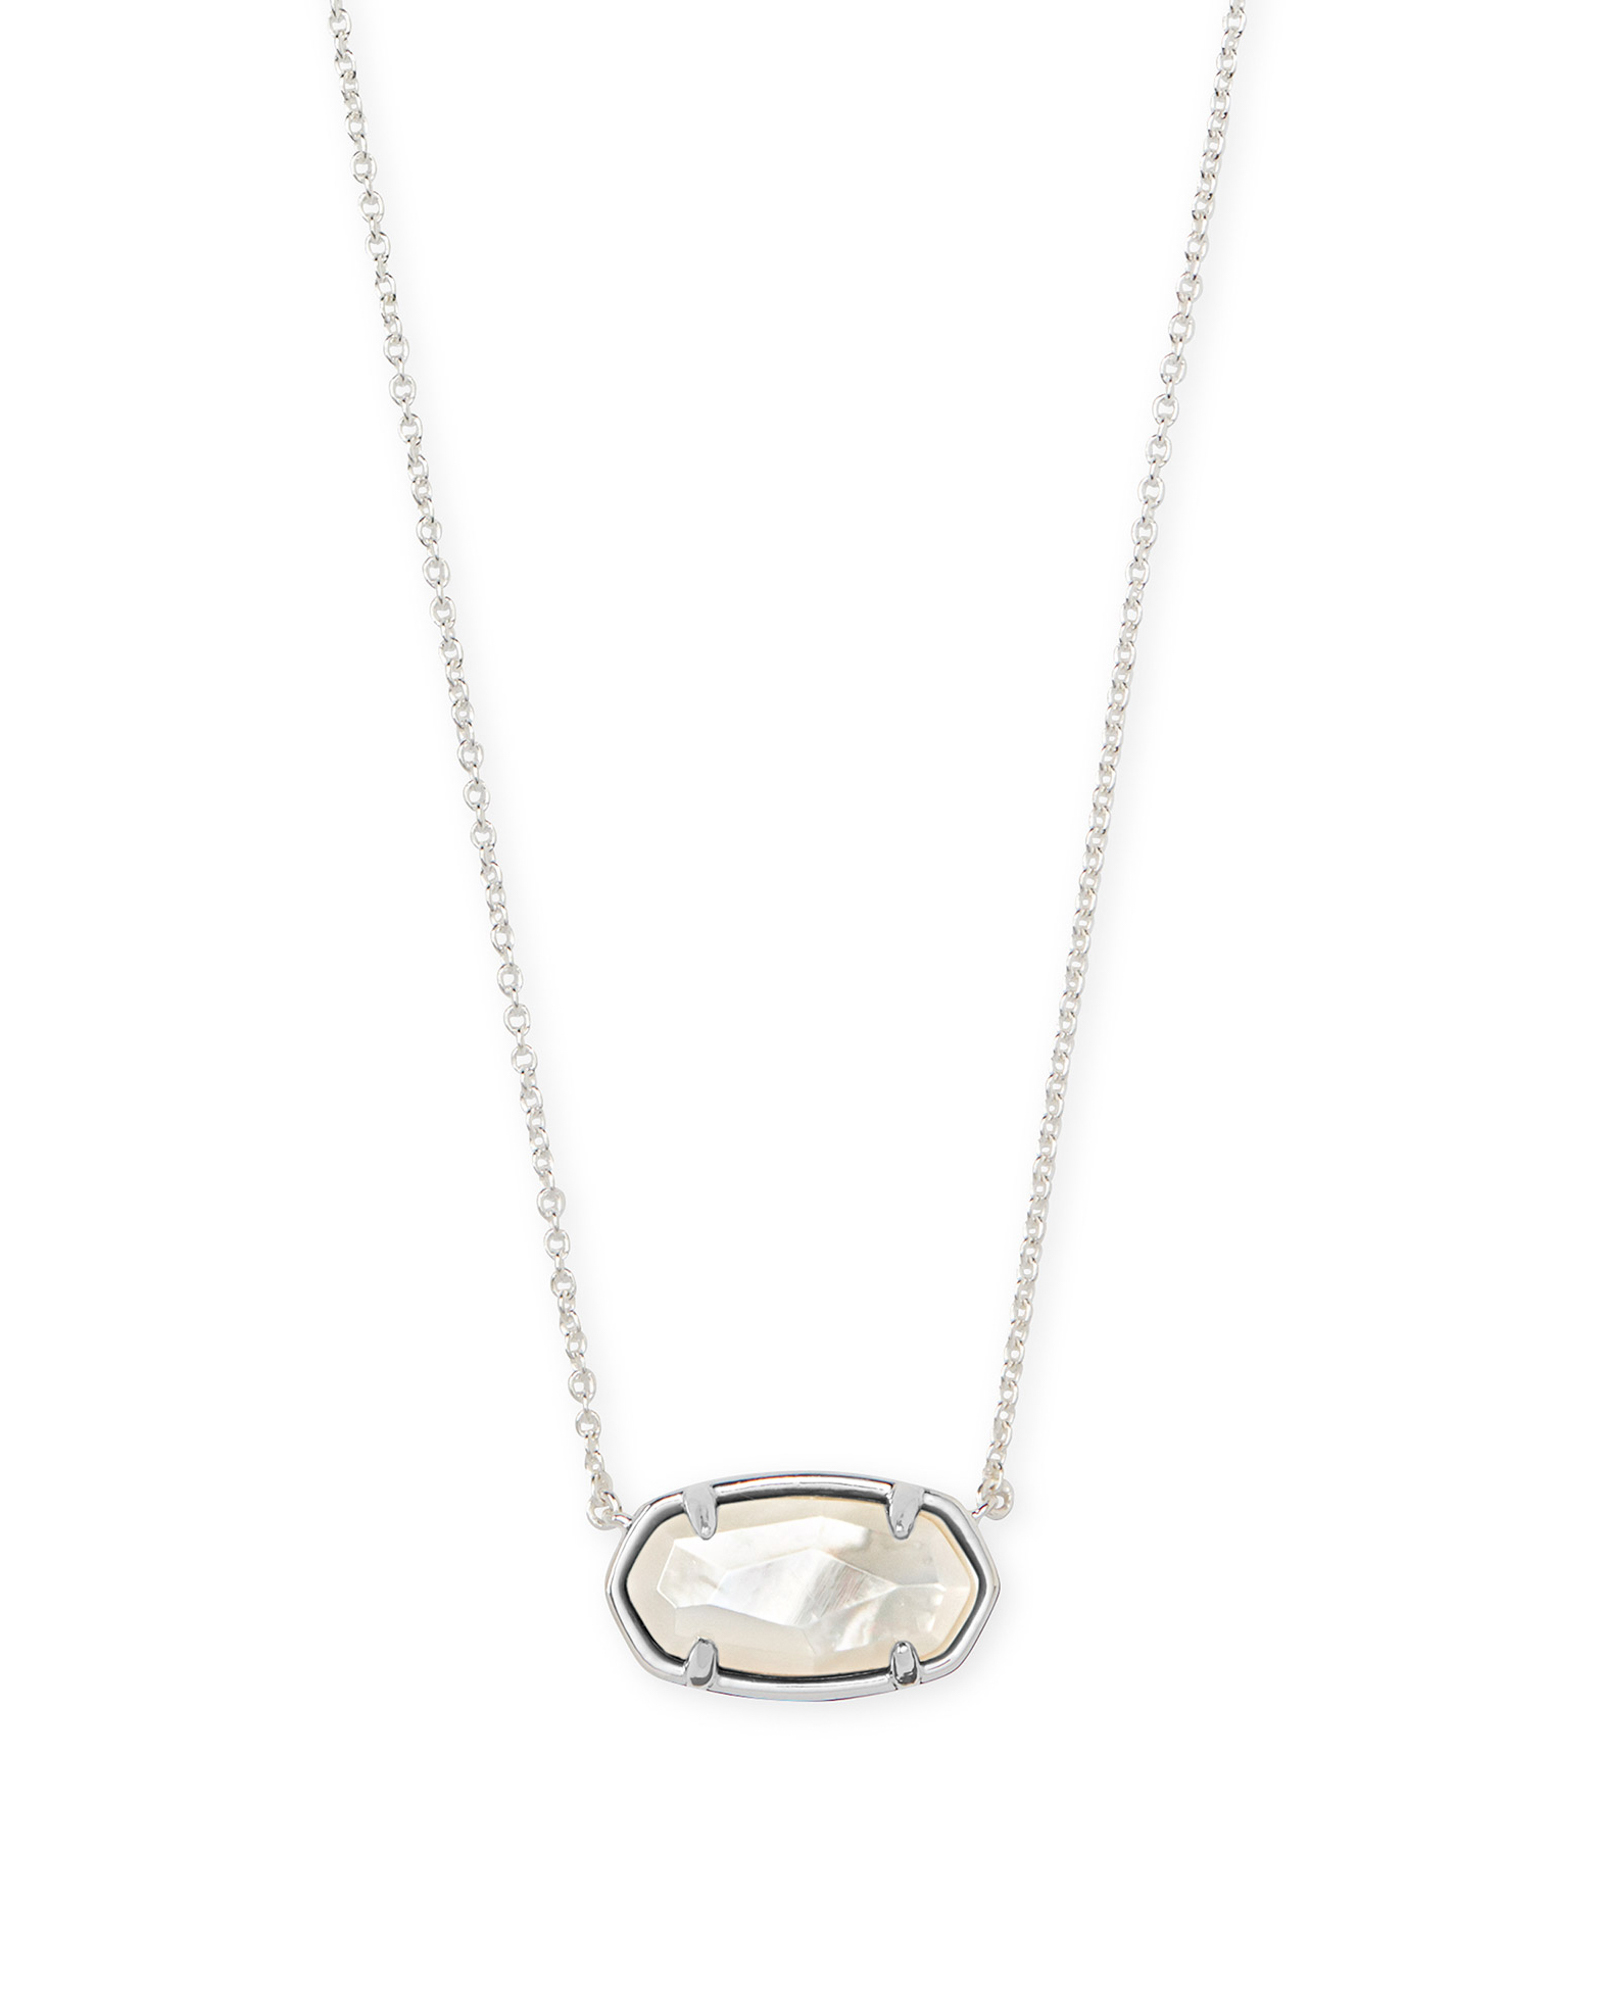 Elisa Sterling Silver Pendant Necklace in Ivory Mother Of Pearl